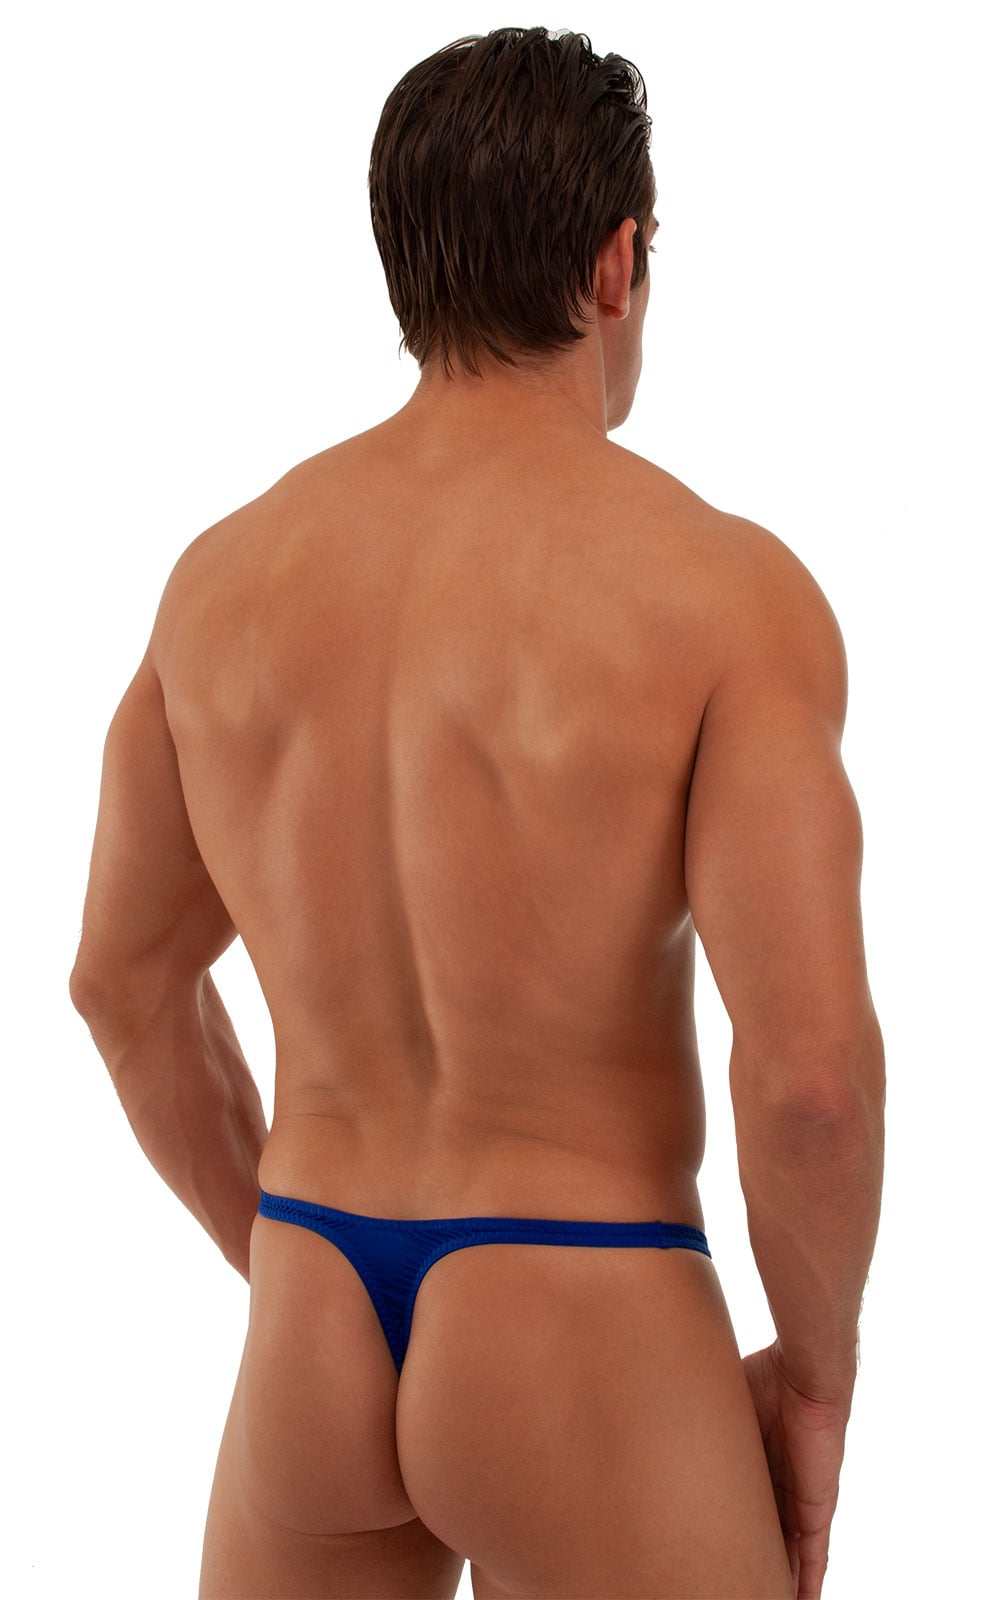 T Back Thong Swimsuit - Bravura Pouch in Semi Sheer ThinSKINZ Royal Blue 3